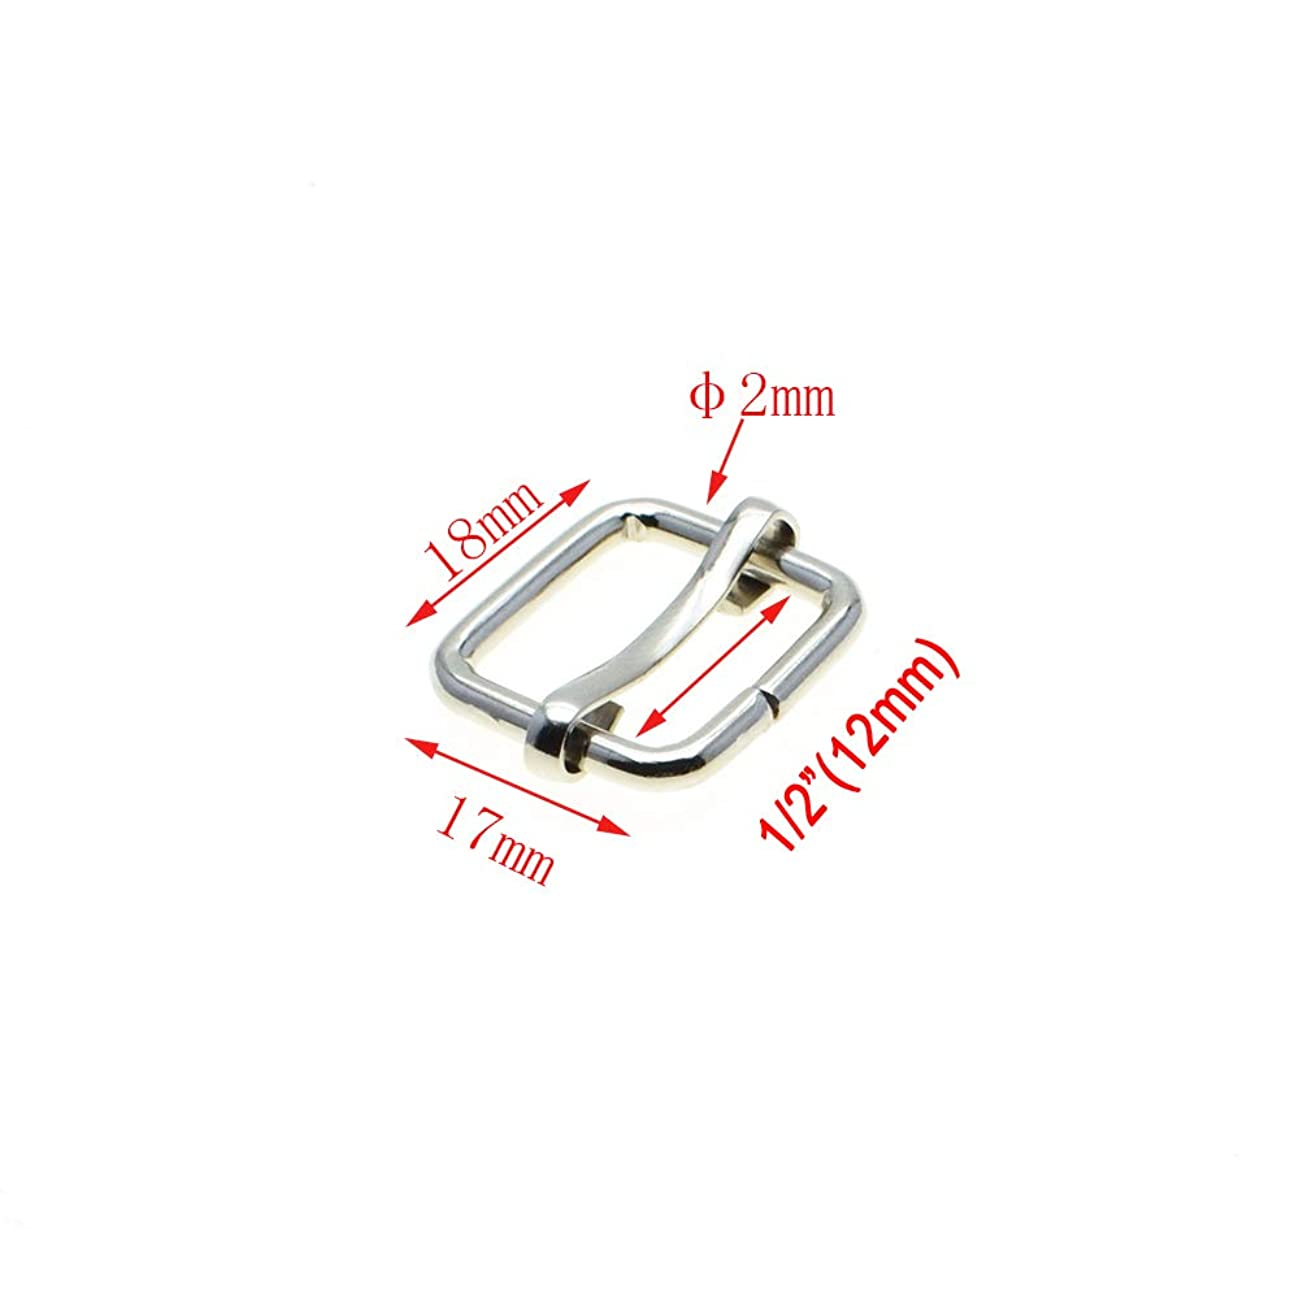 Metal Slides Tri-Glides Wire-Formed Roller Pin Buckles Strap Slider Adjuster Buckles (1/2